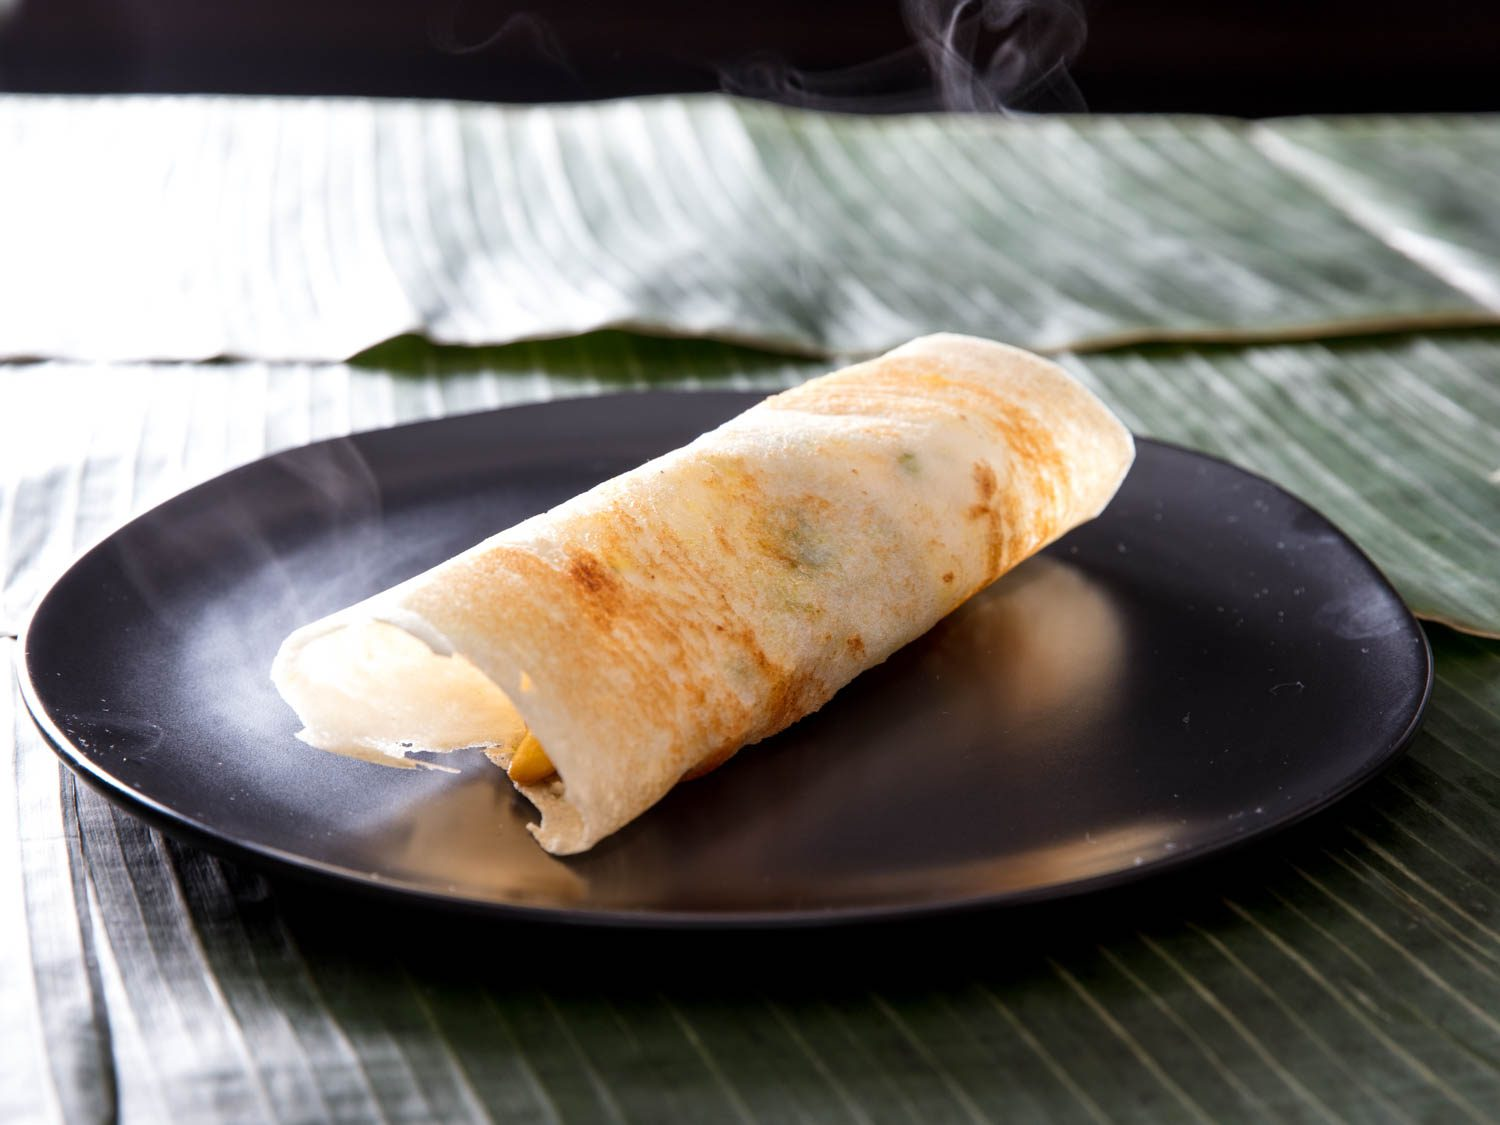 Dosa (Indian Rice-and-Lentil Crepes)